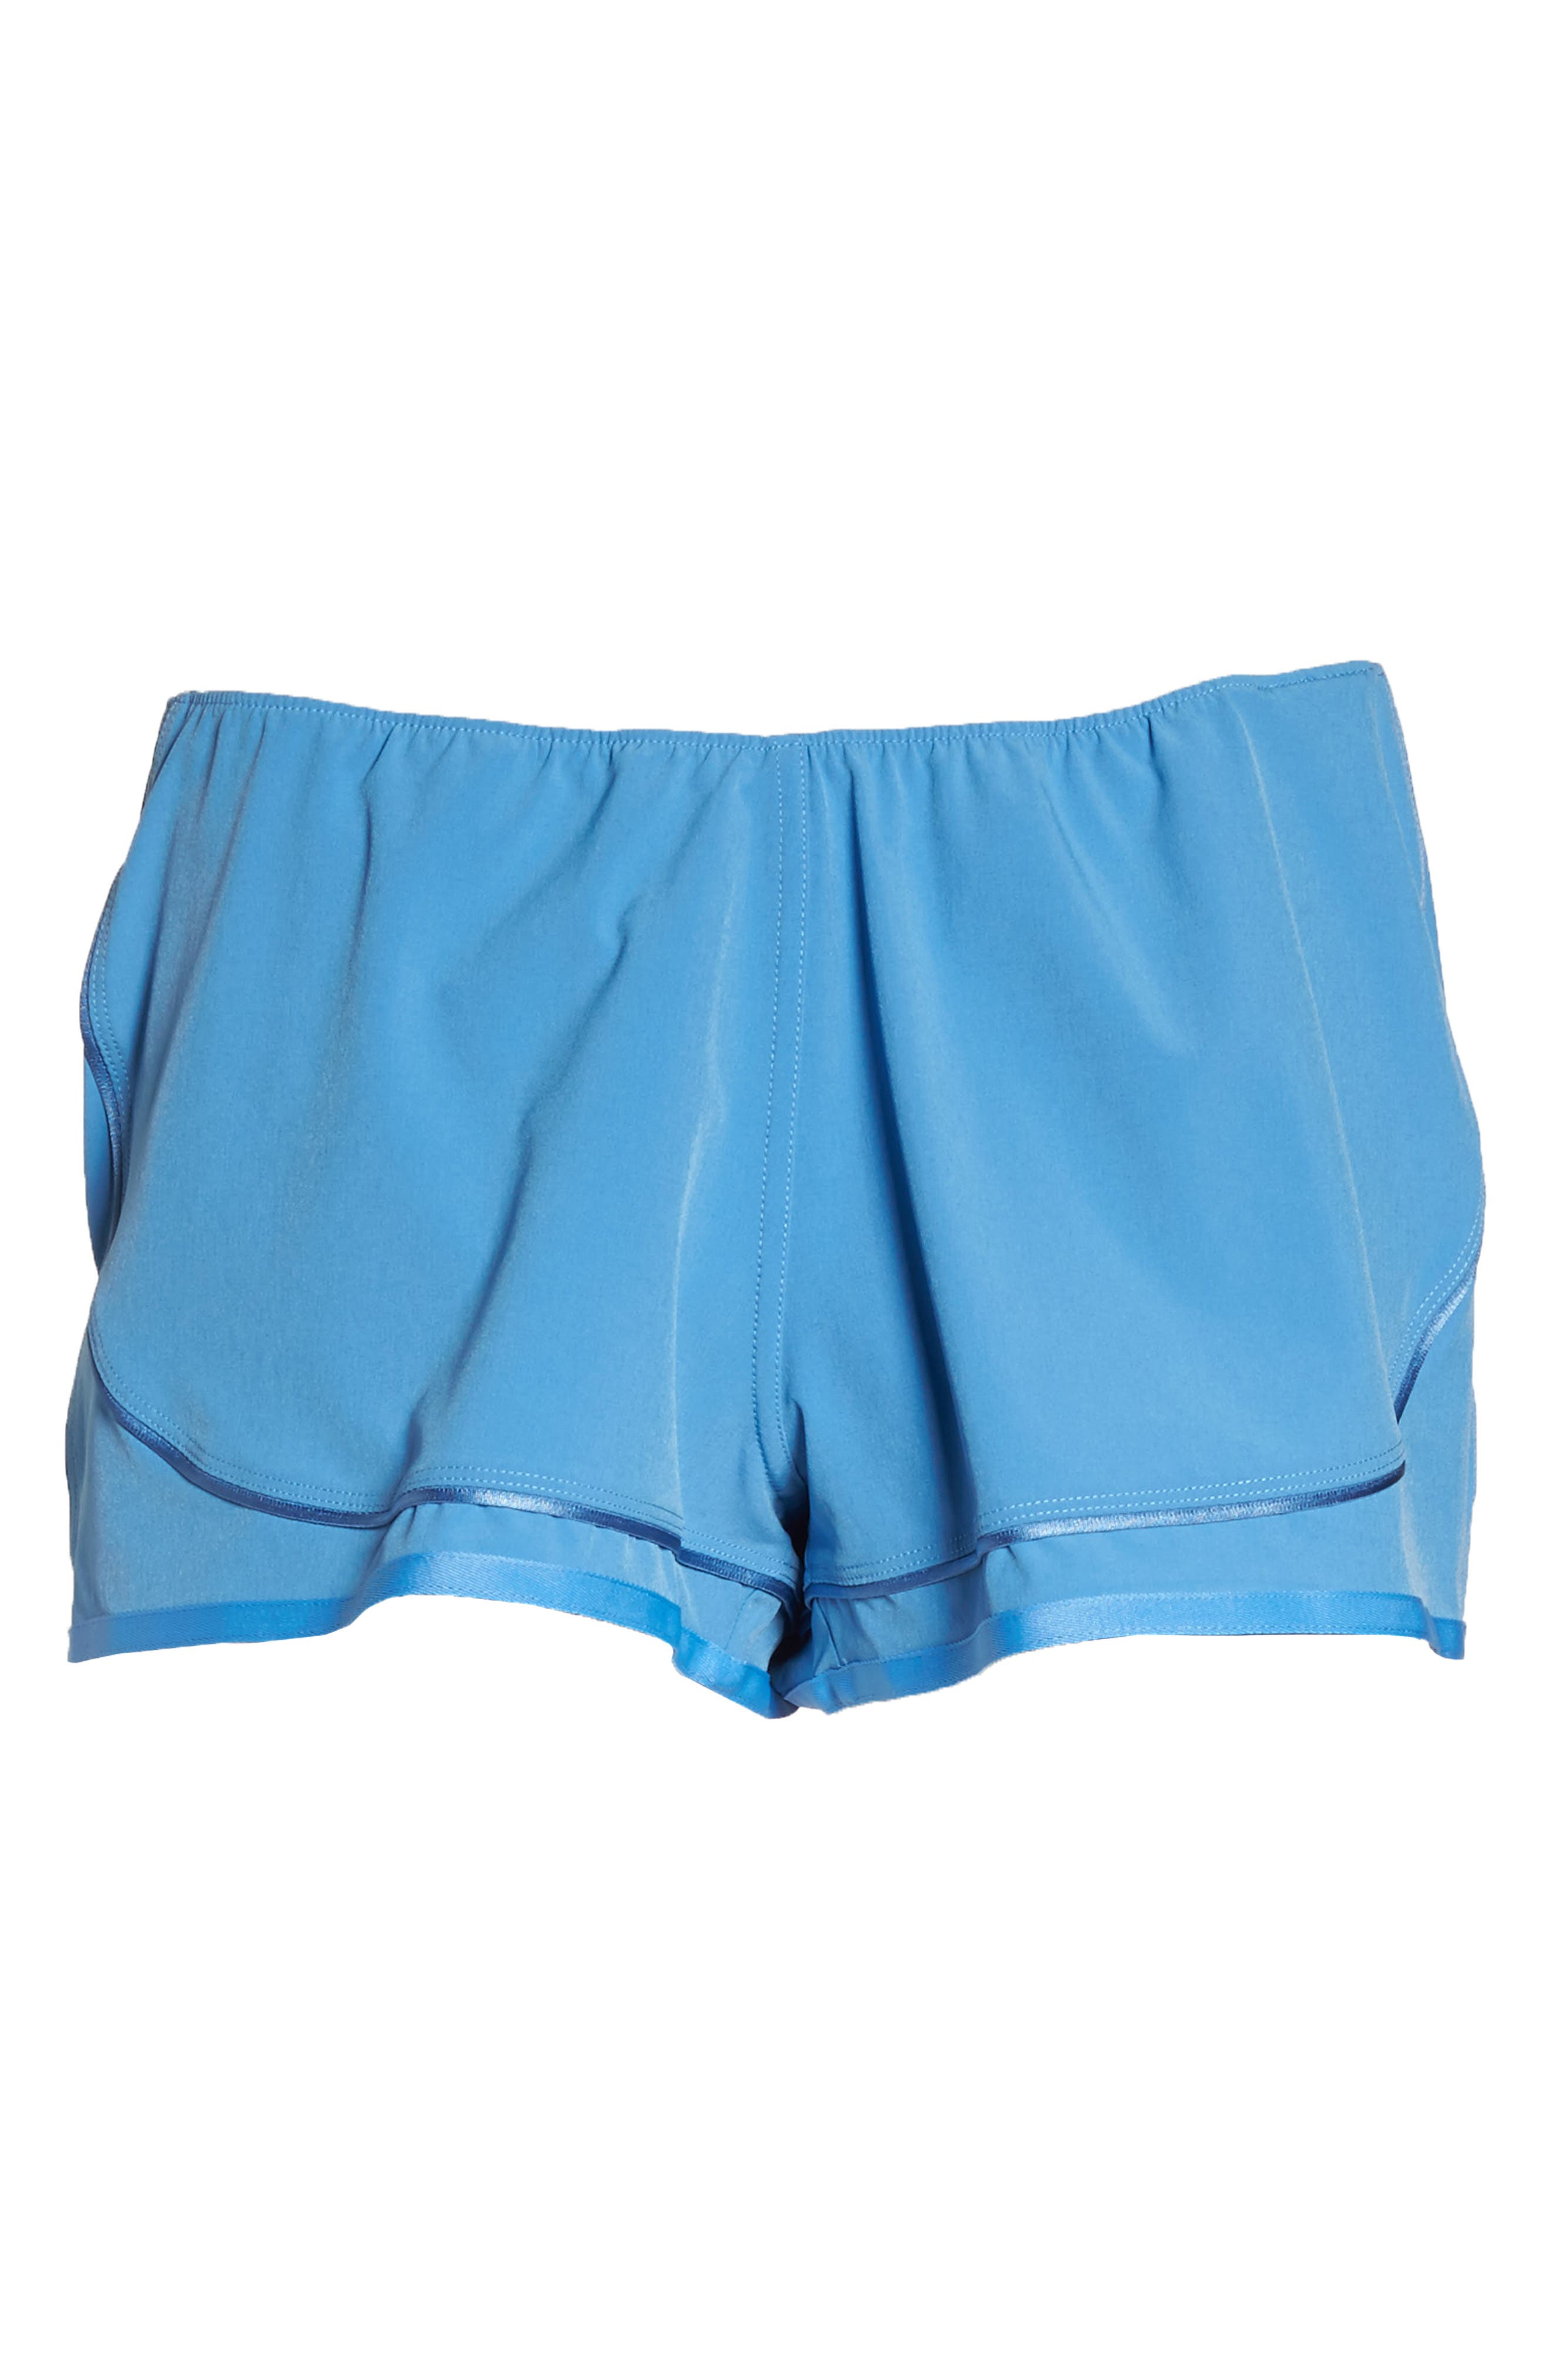 Training High Intensity 2-In-1 Shorts,                             Alternate thumbnail 7, color,                             407